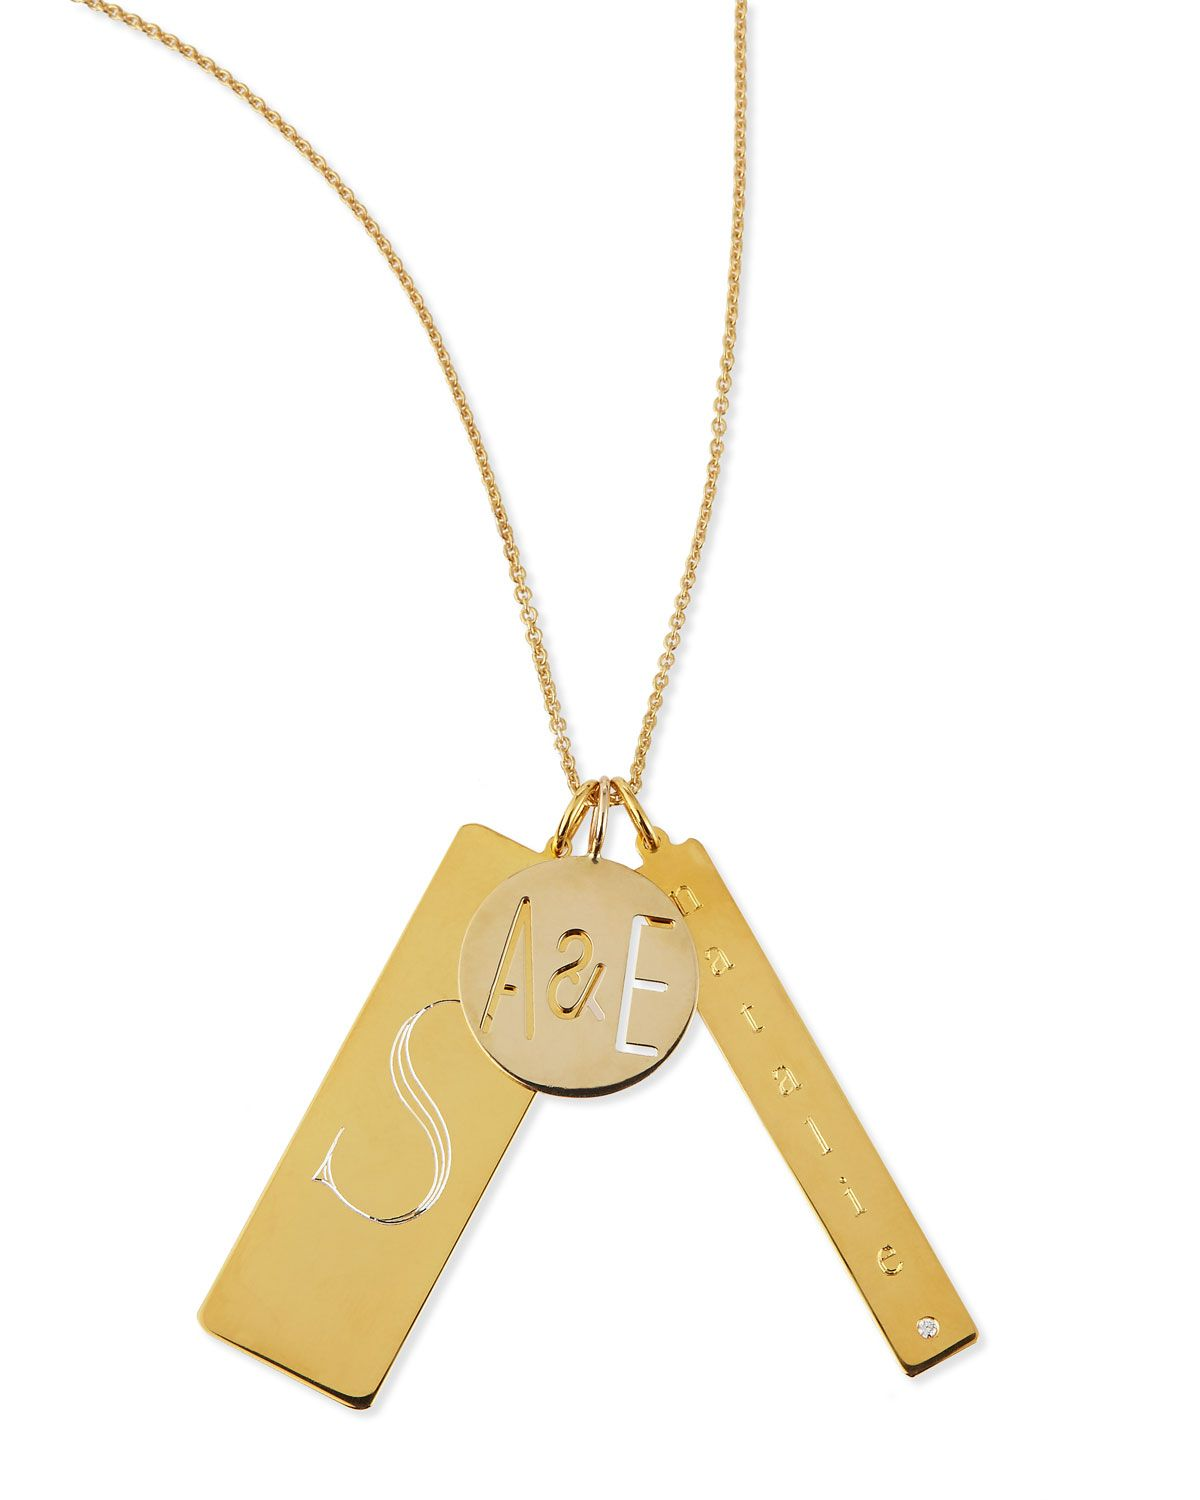 K gold plated edie pendant necklace with personalized monogram